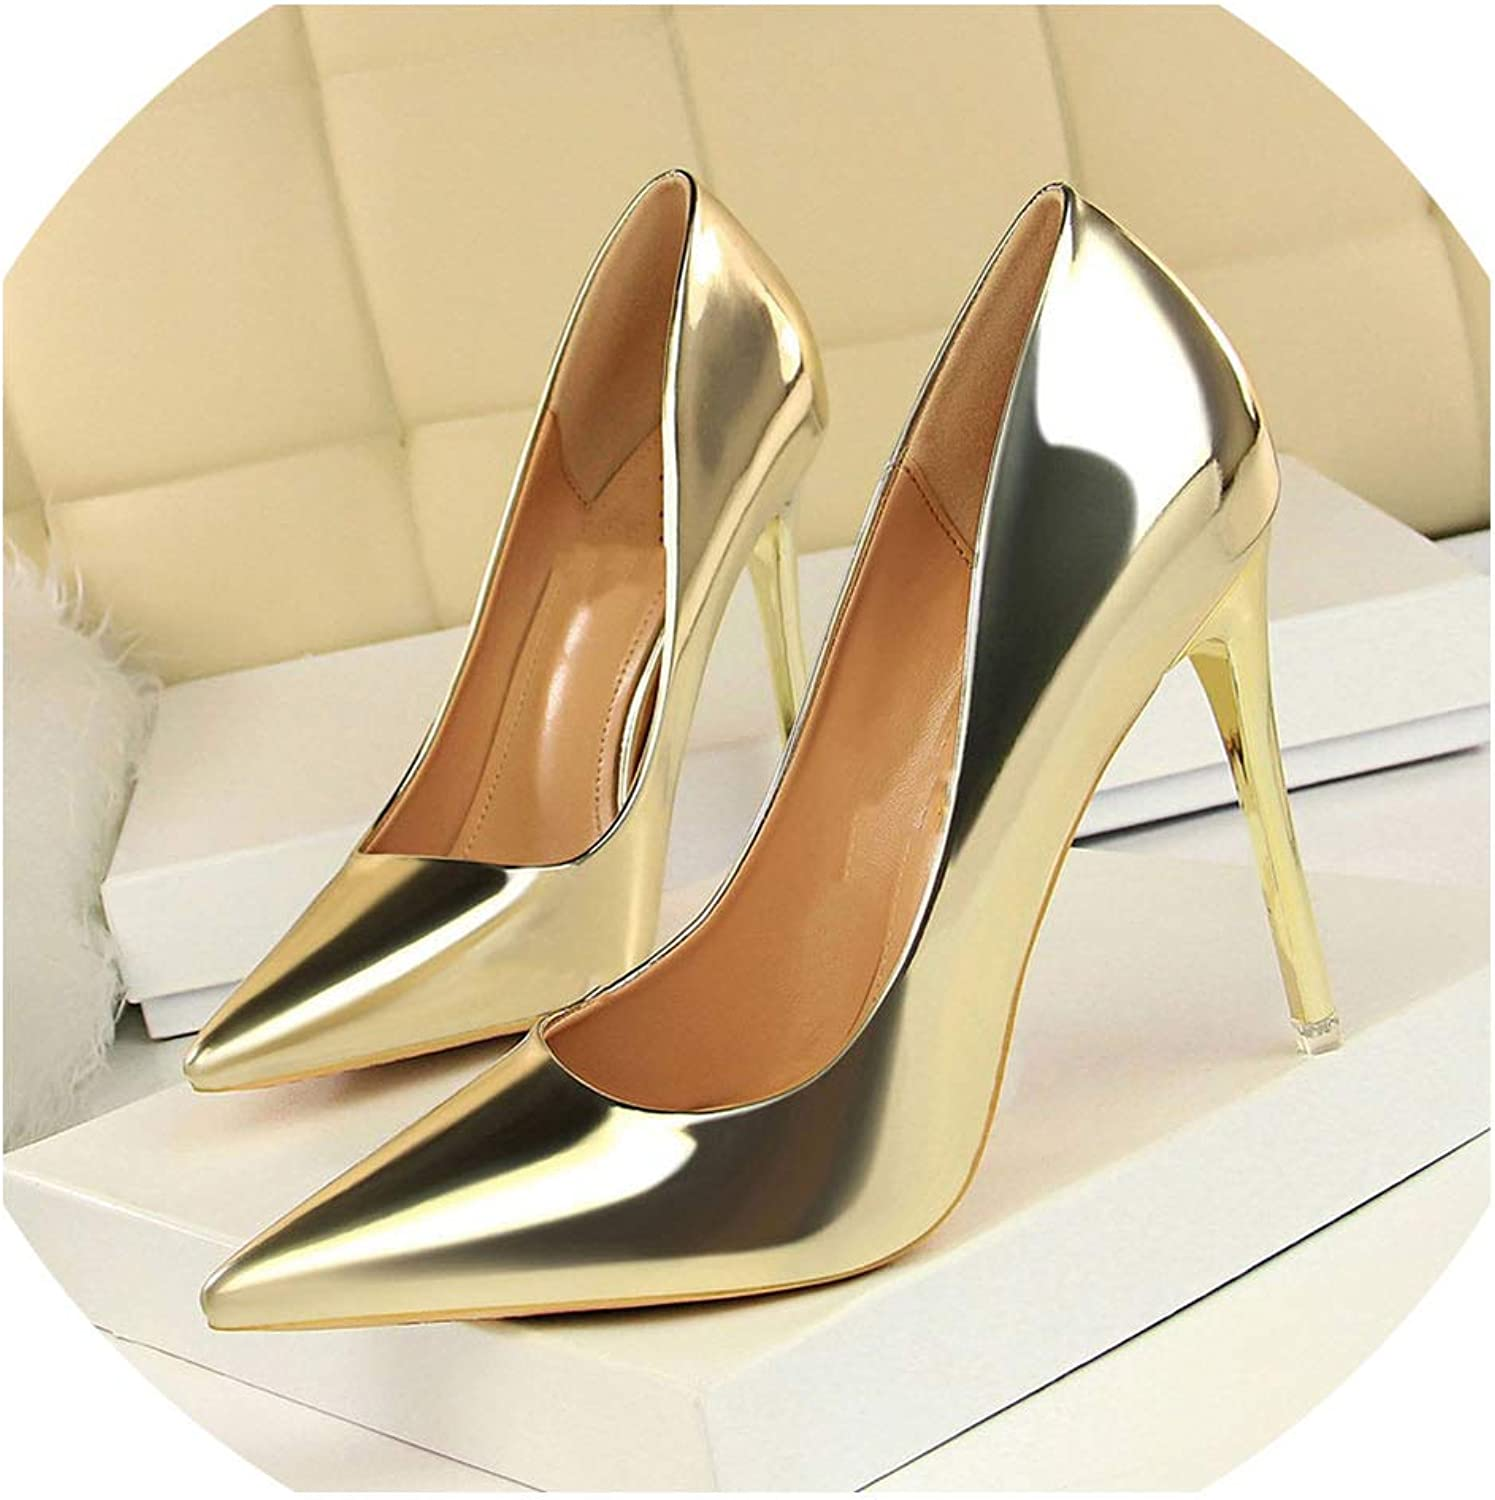 Axd-Home Patent Leather Thin Heels Office Women shoes High Heels shoes Women's Pointed Toe